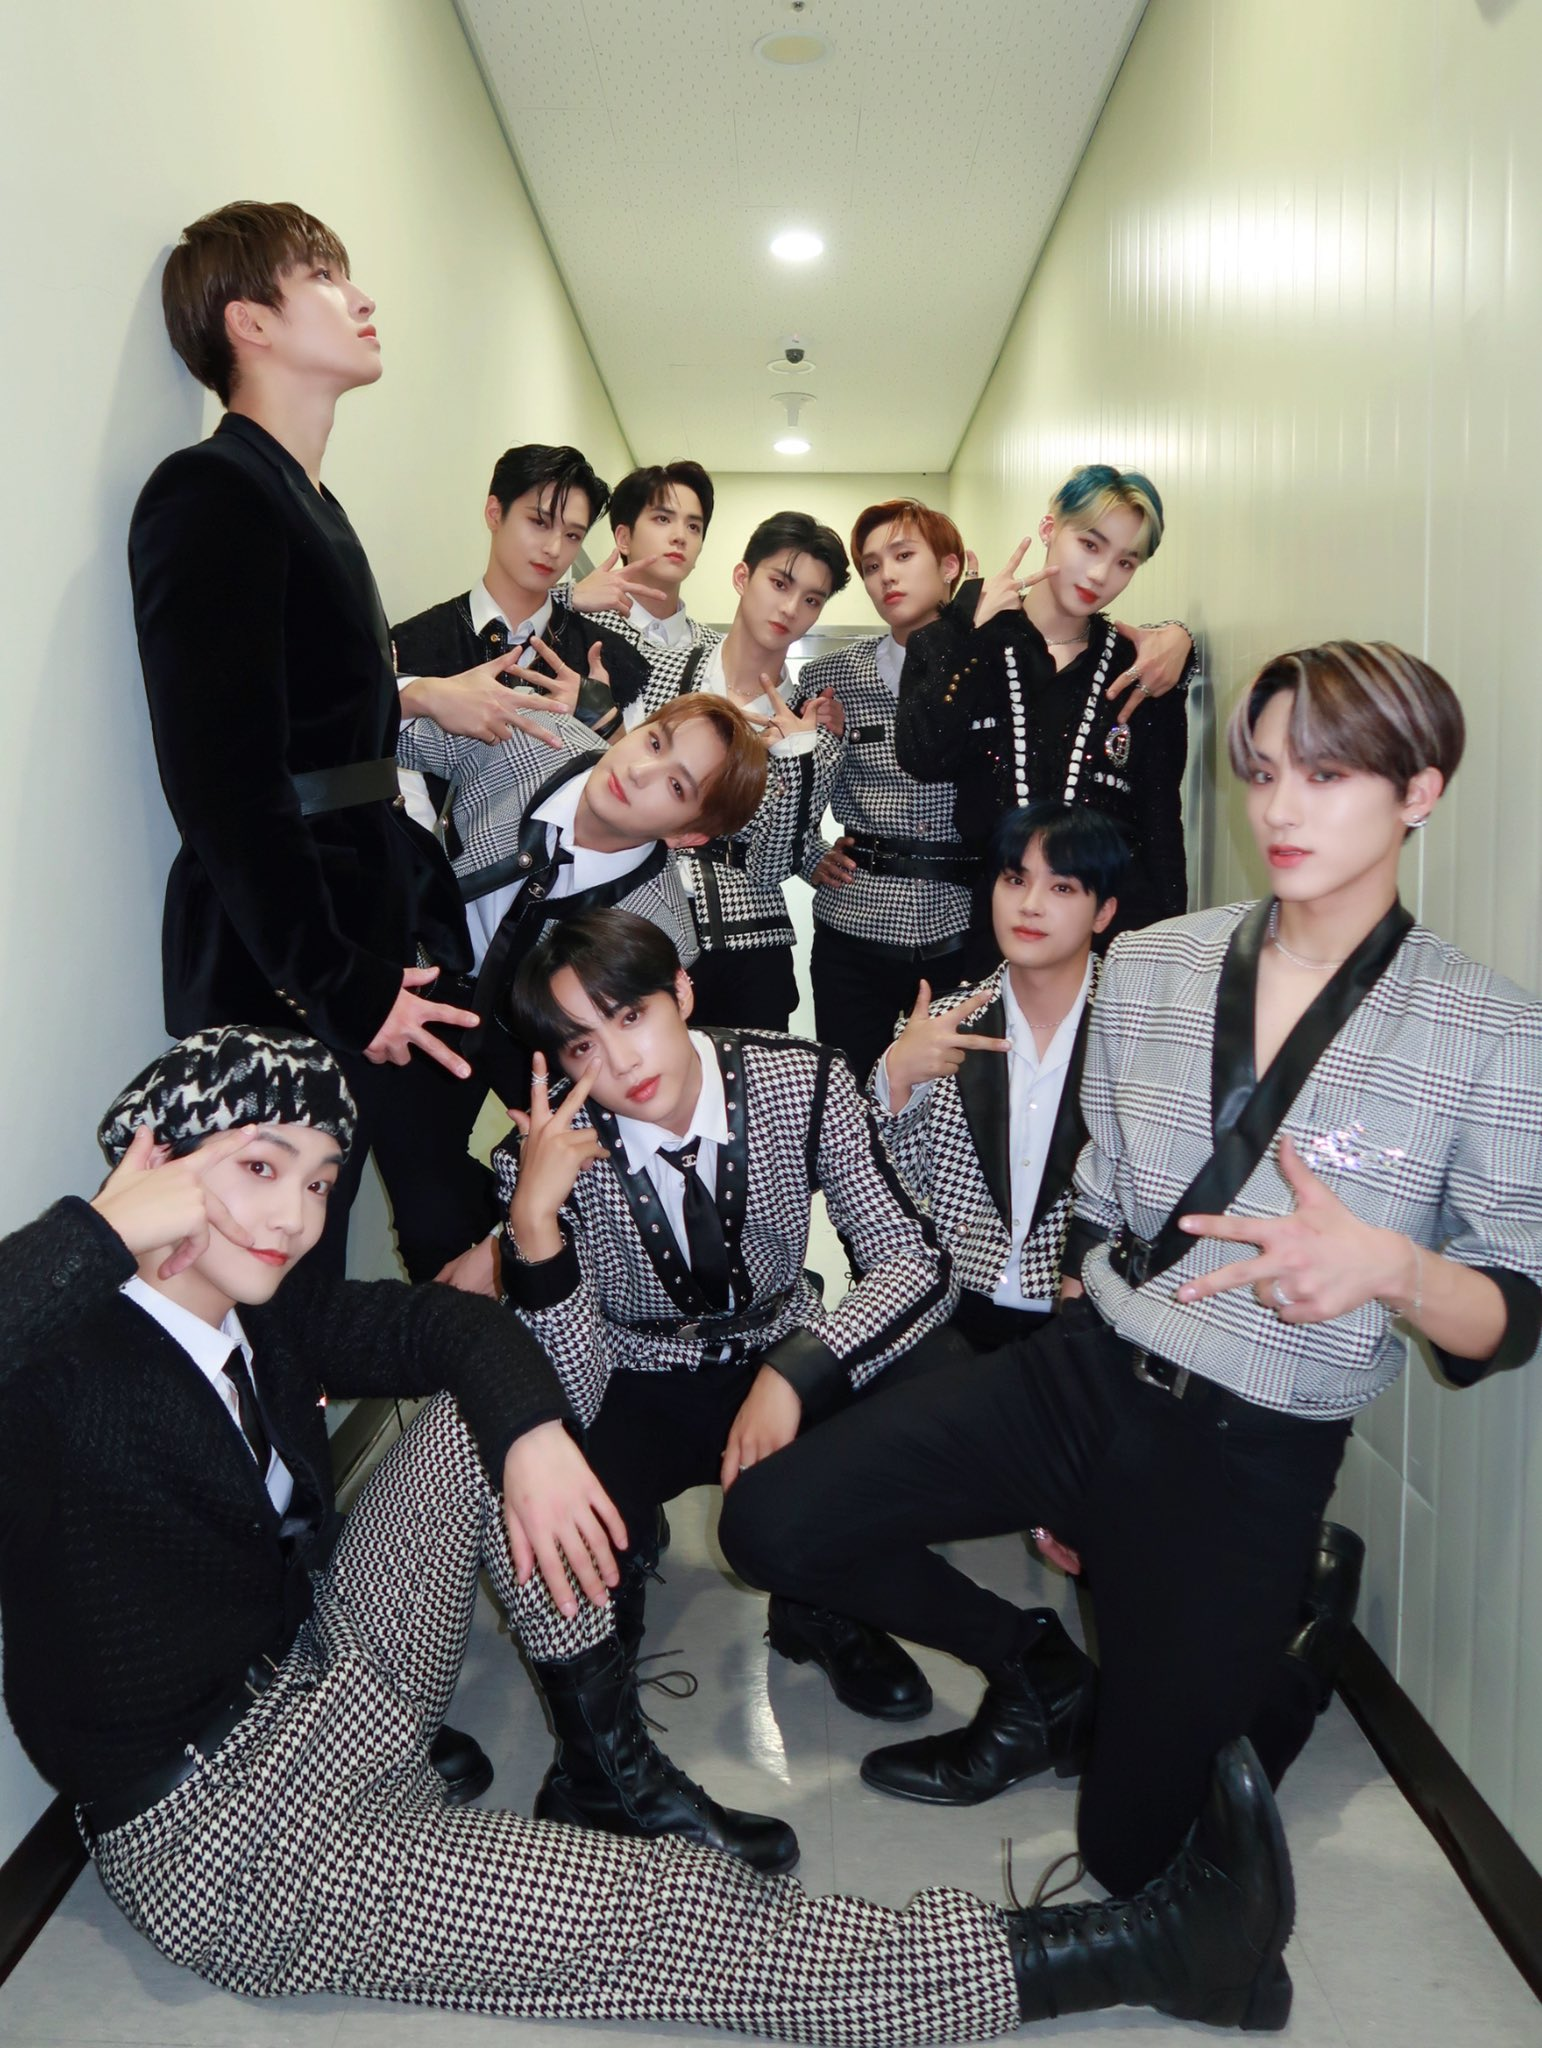 the-boyz-announces-special-promotion-for-b-side-song-whiplash-starting-october-29-3